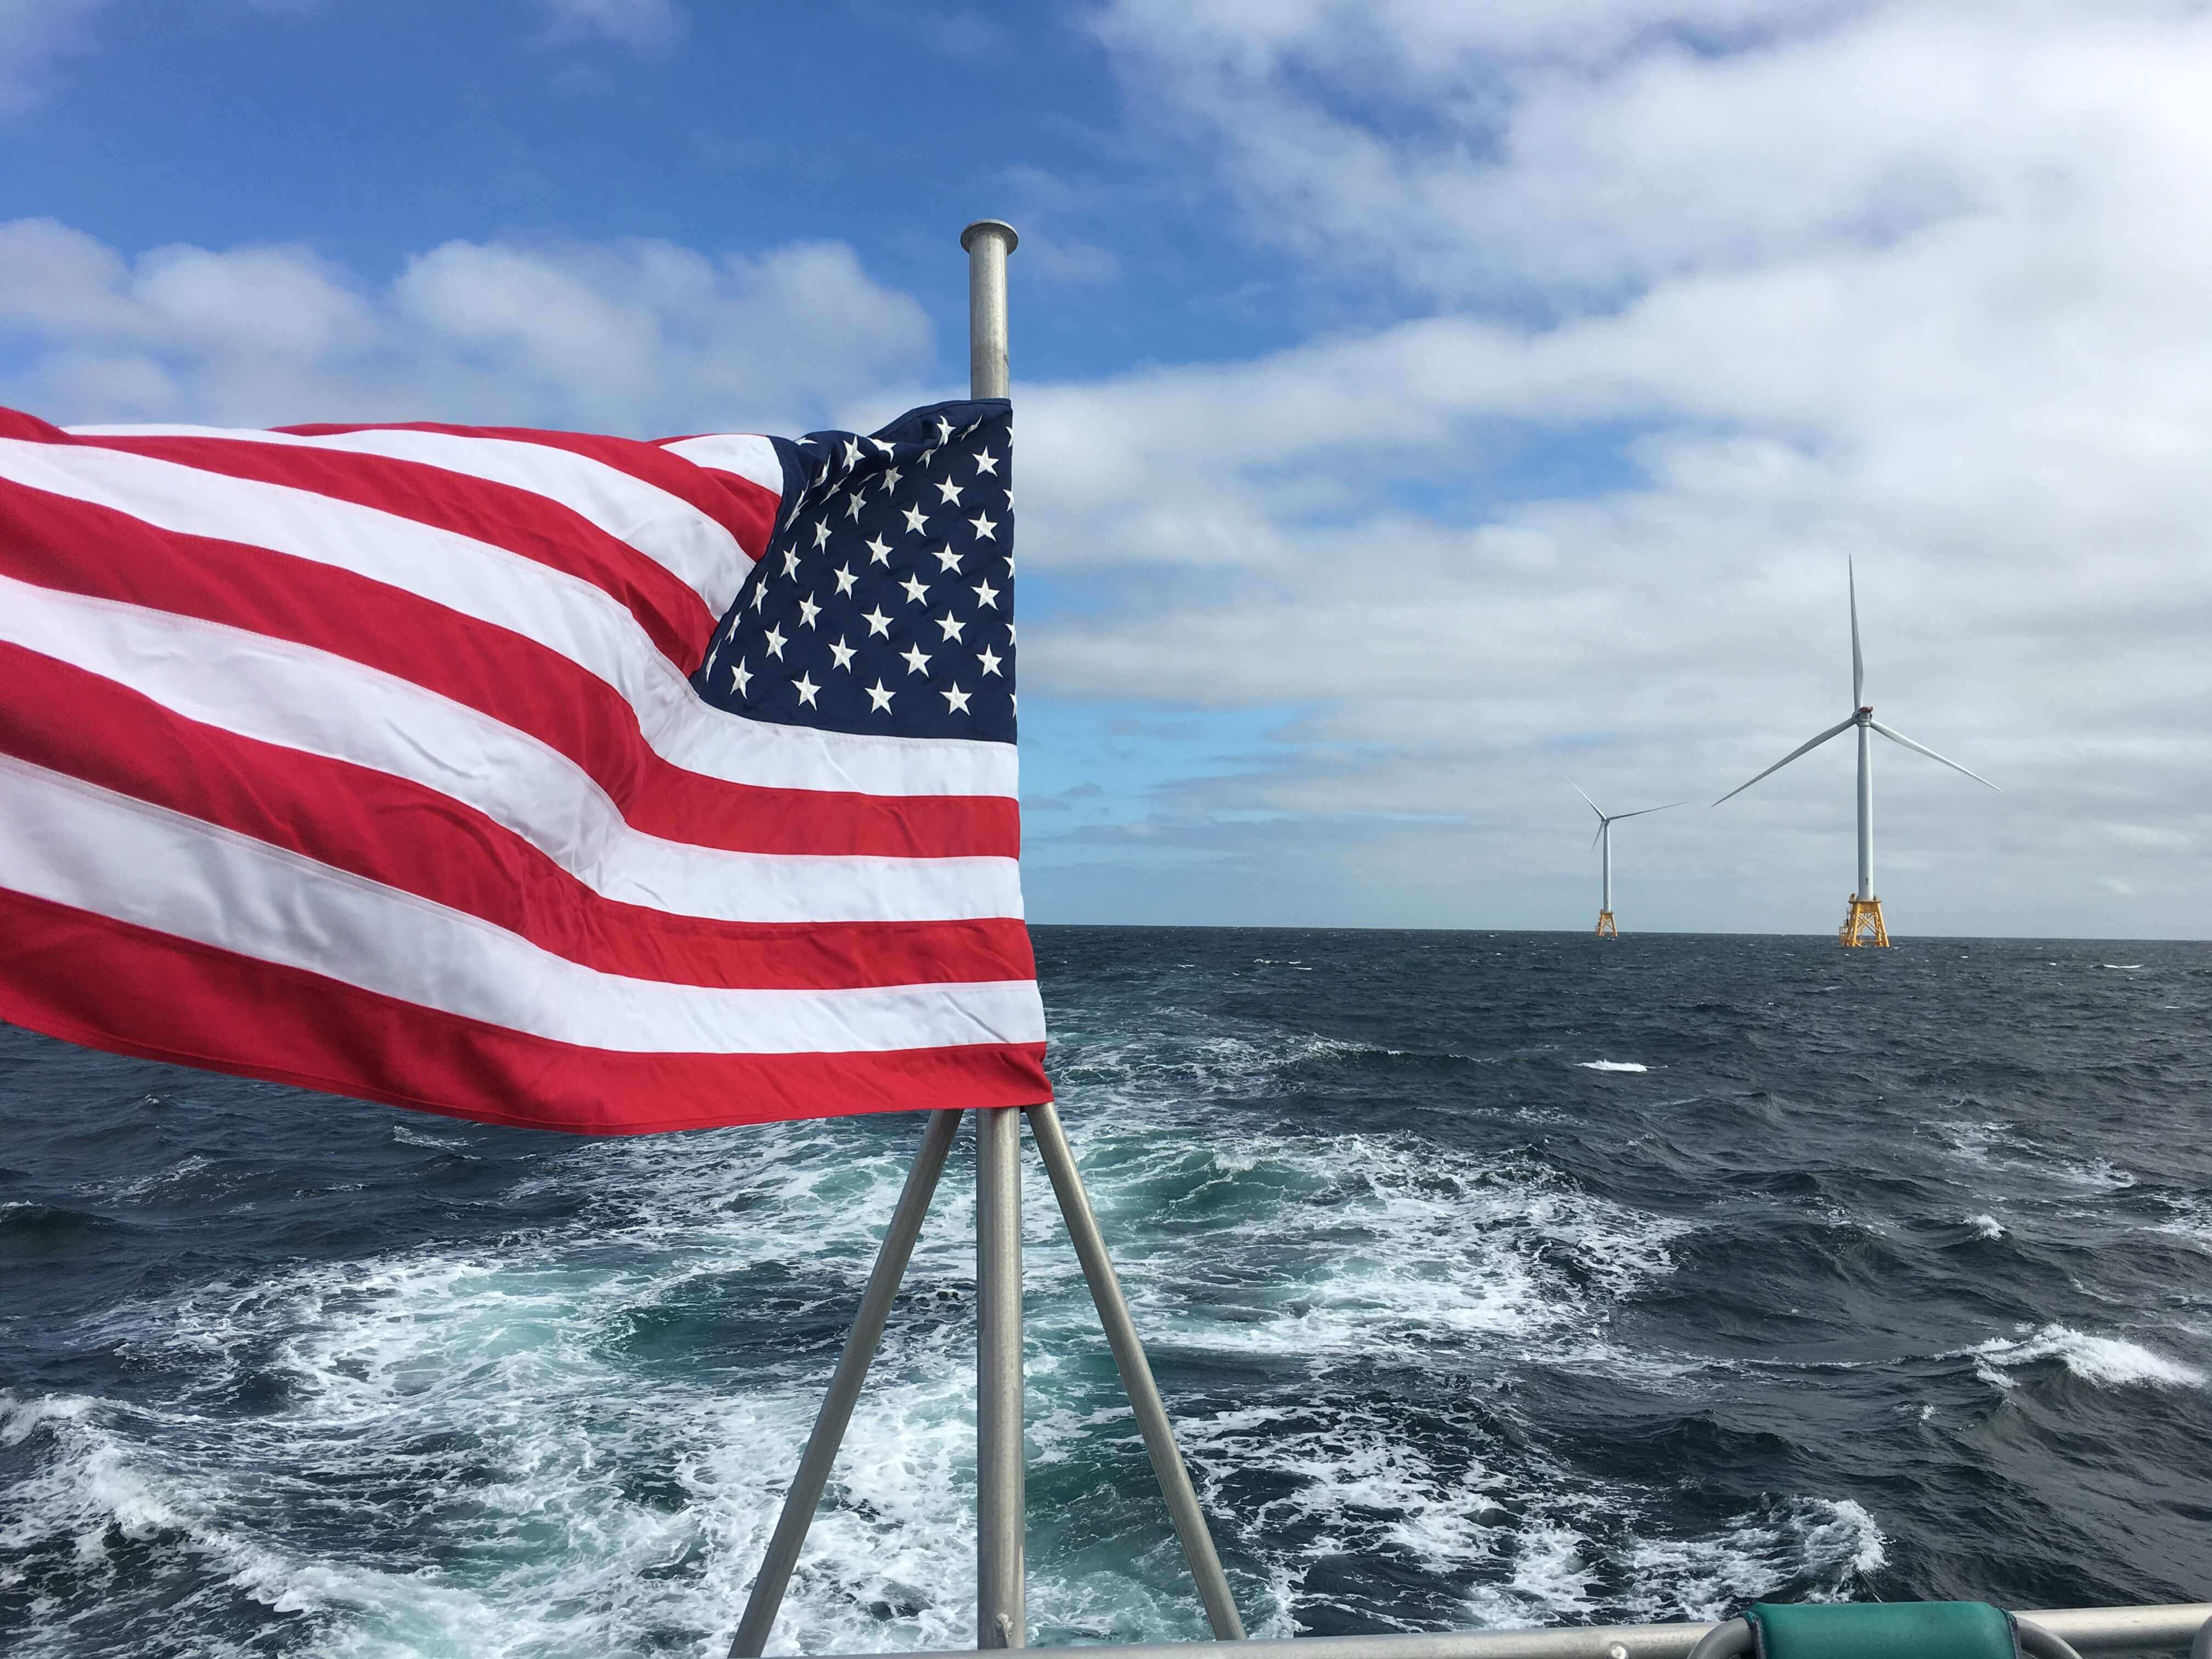 Block-Island-US-OSWF U.K. Firm Expands To U.S. In Support Of Offshore Wind